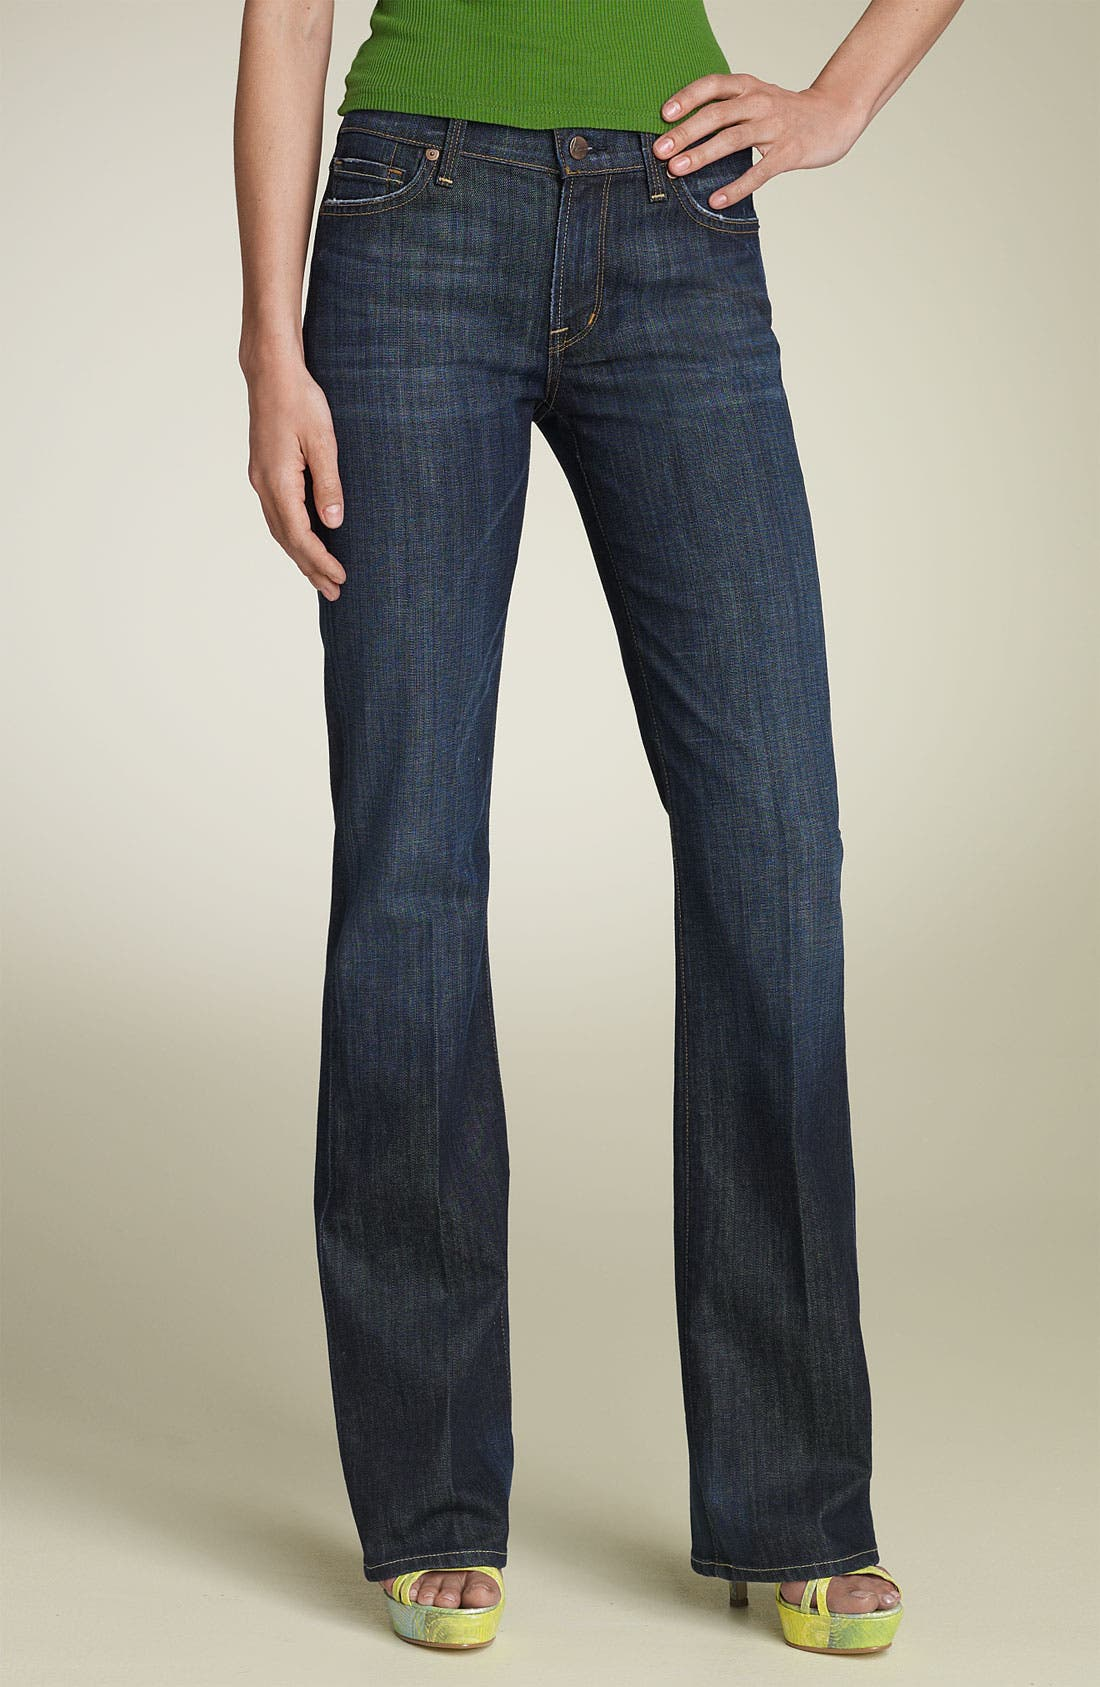 Main Image - Citizens of Humanity 'Amber' Mid Rise Bootcut Stretch Jeans (New Pacific)